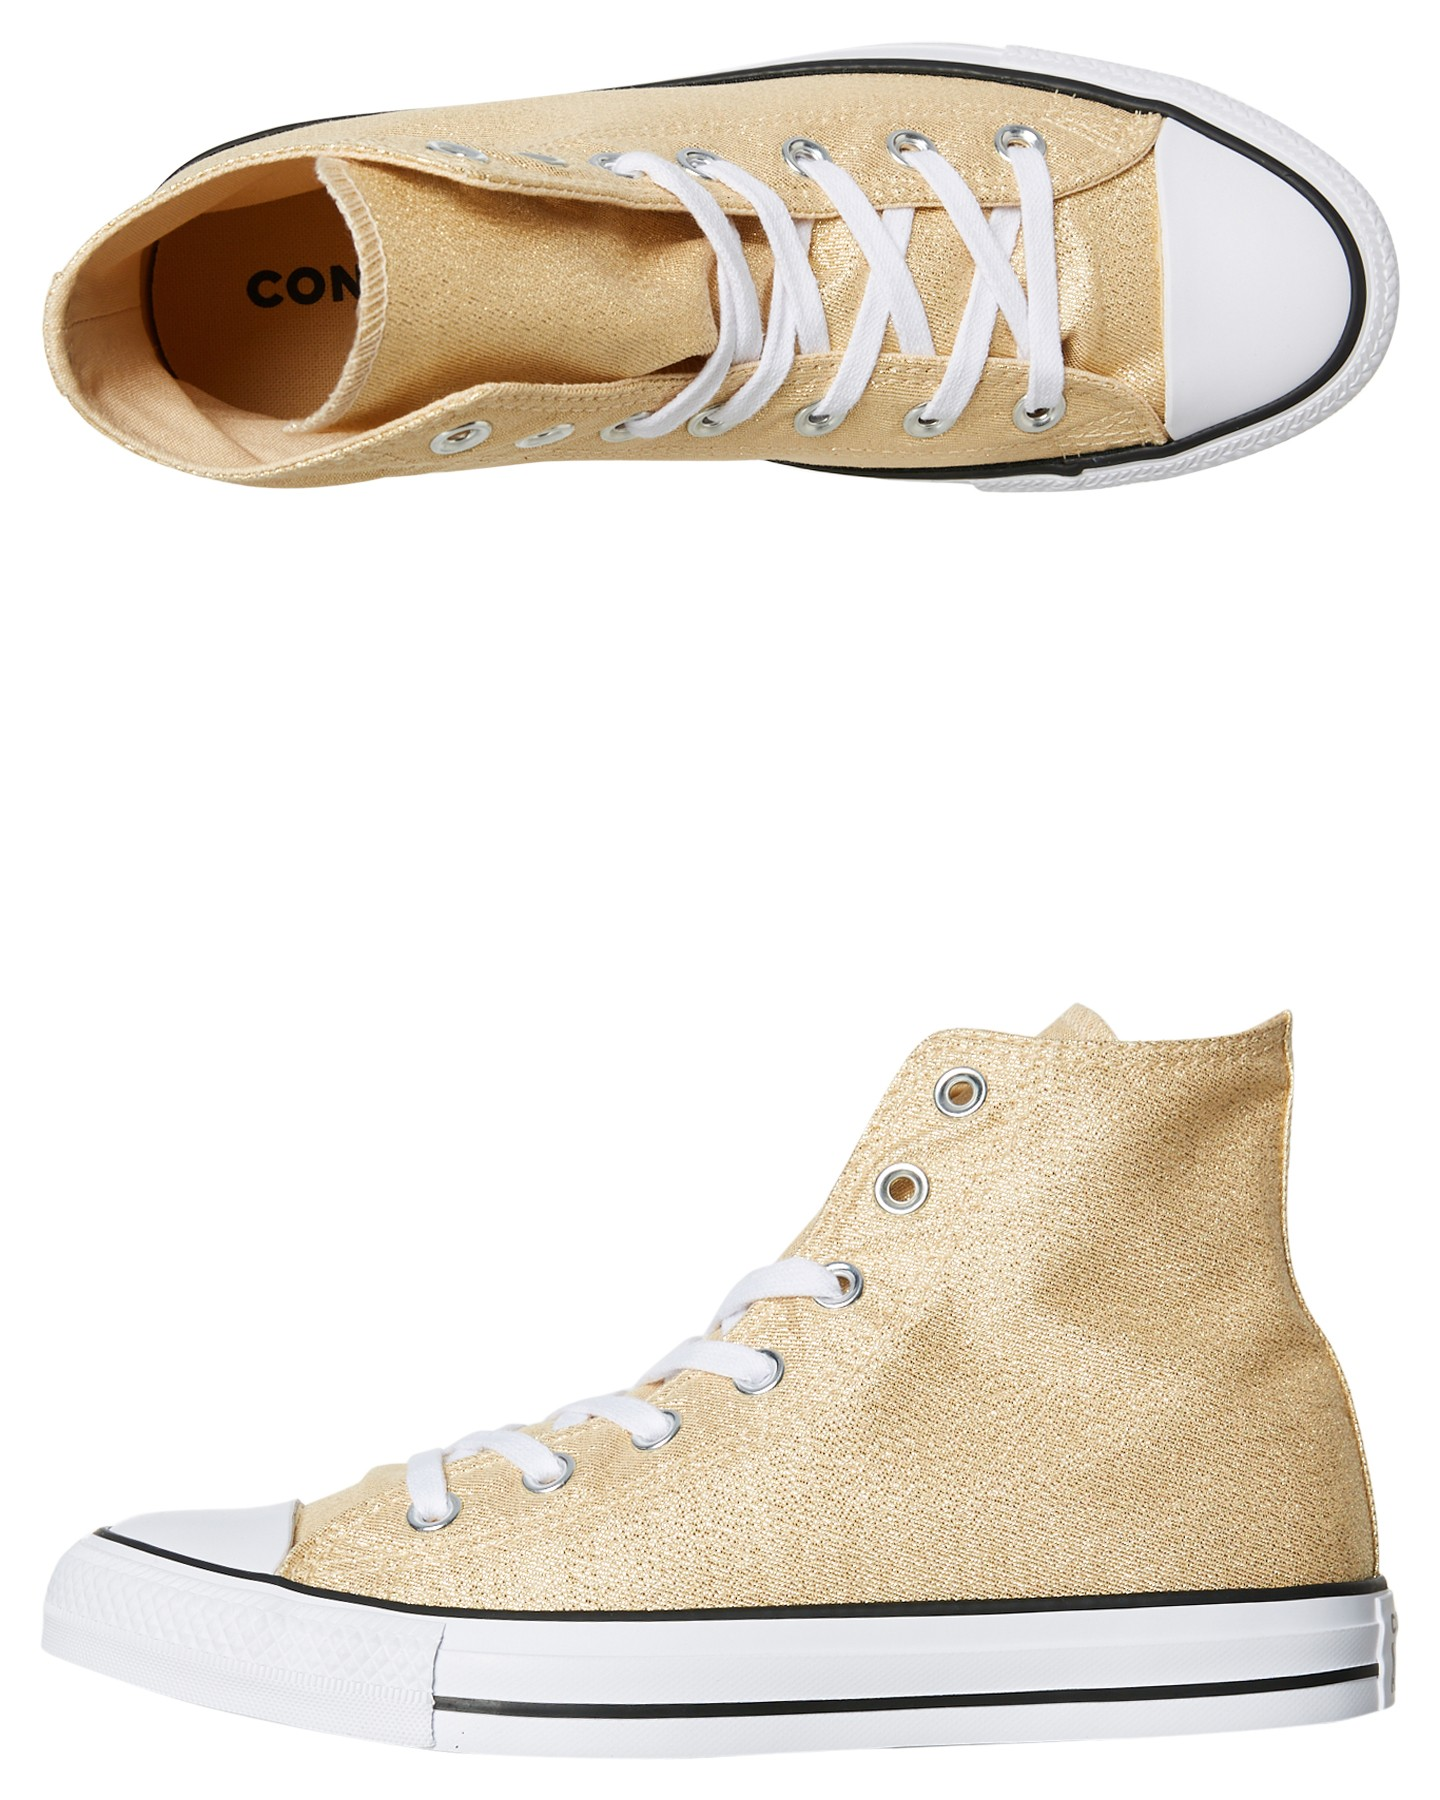 Womens Chuck Taylor All Star Hi Shoe Metallic Twine By CONVERSE